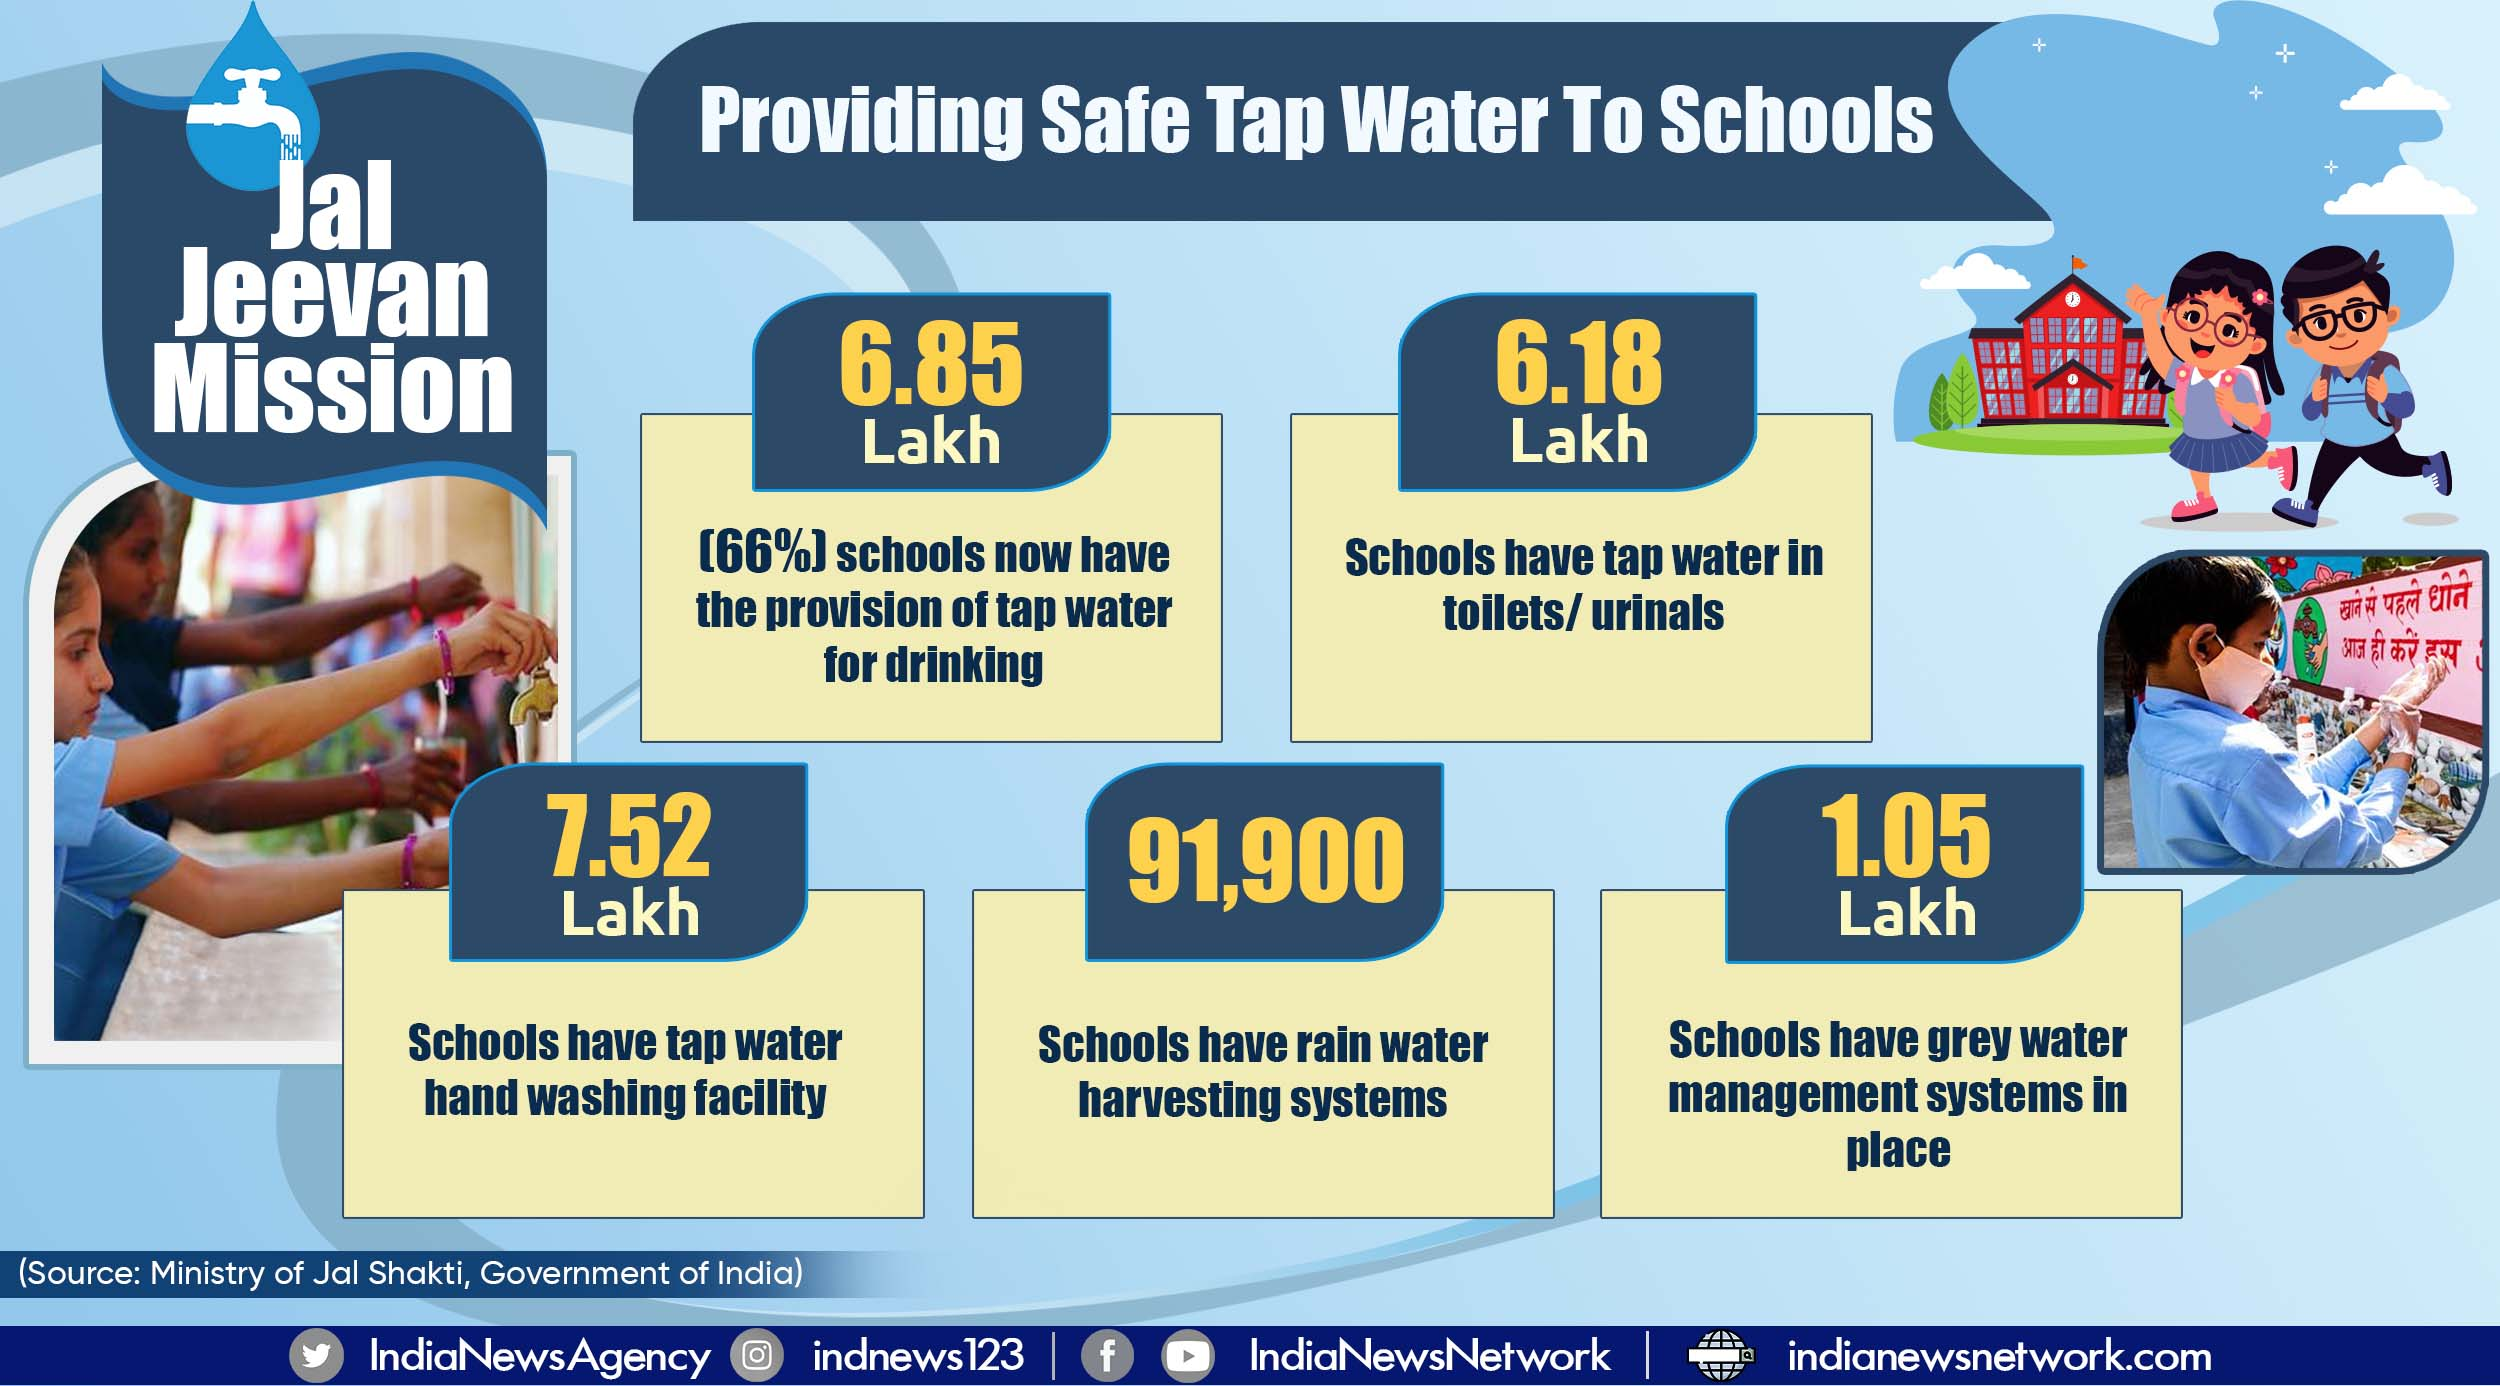 Tap water supply now reaches 66% schools across India